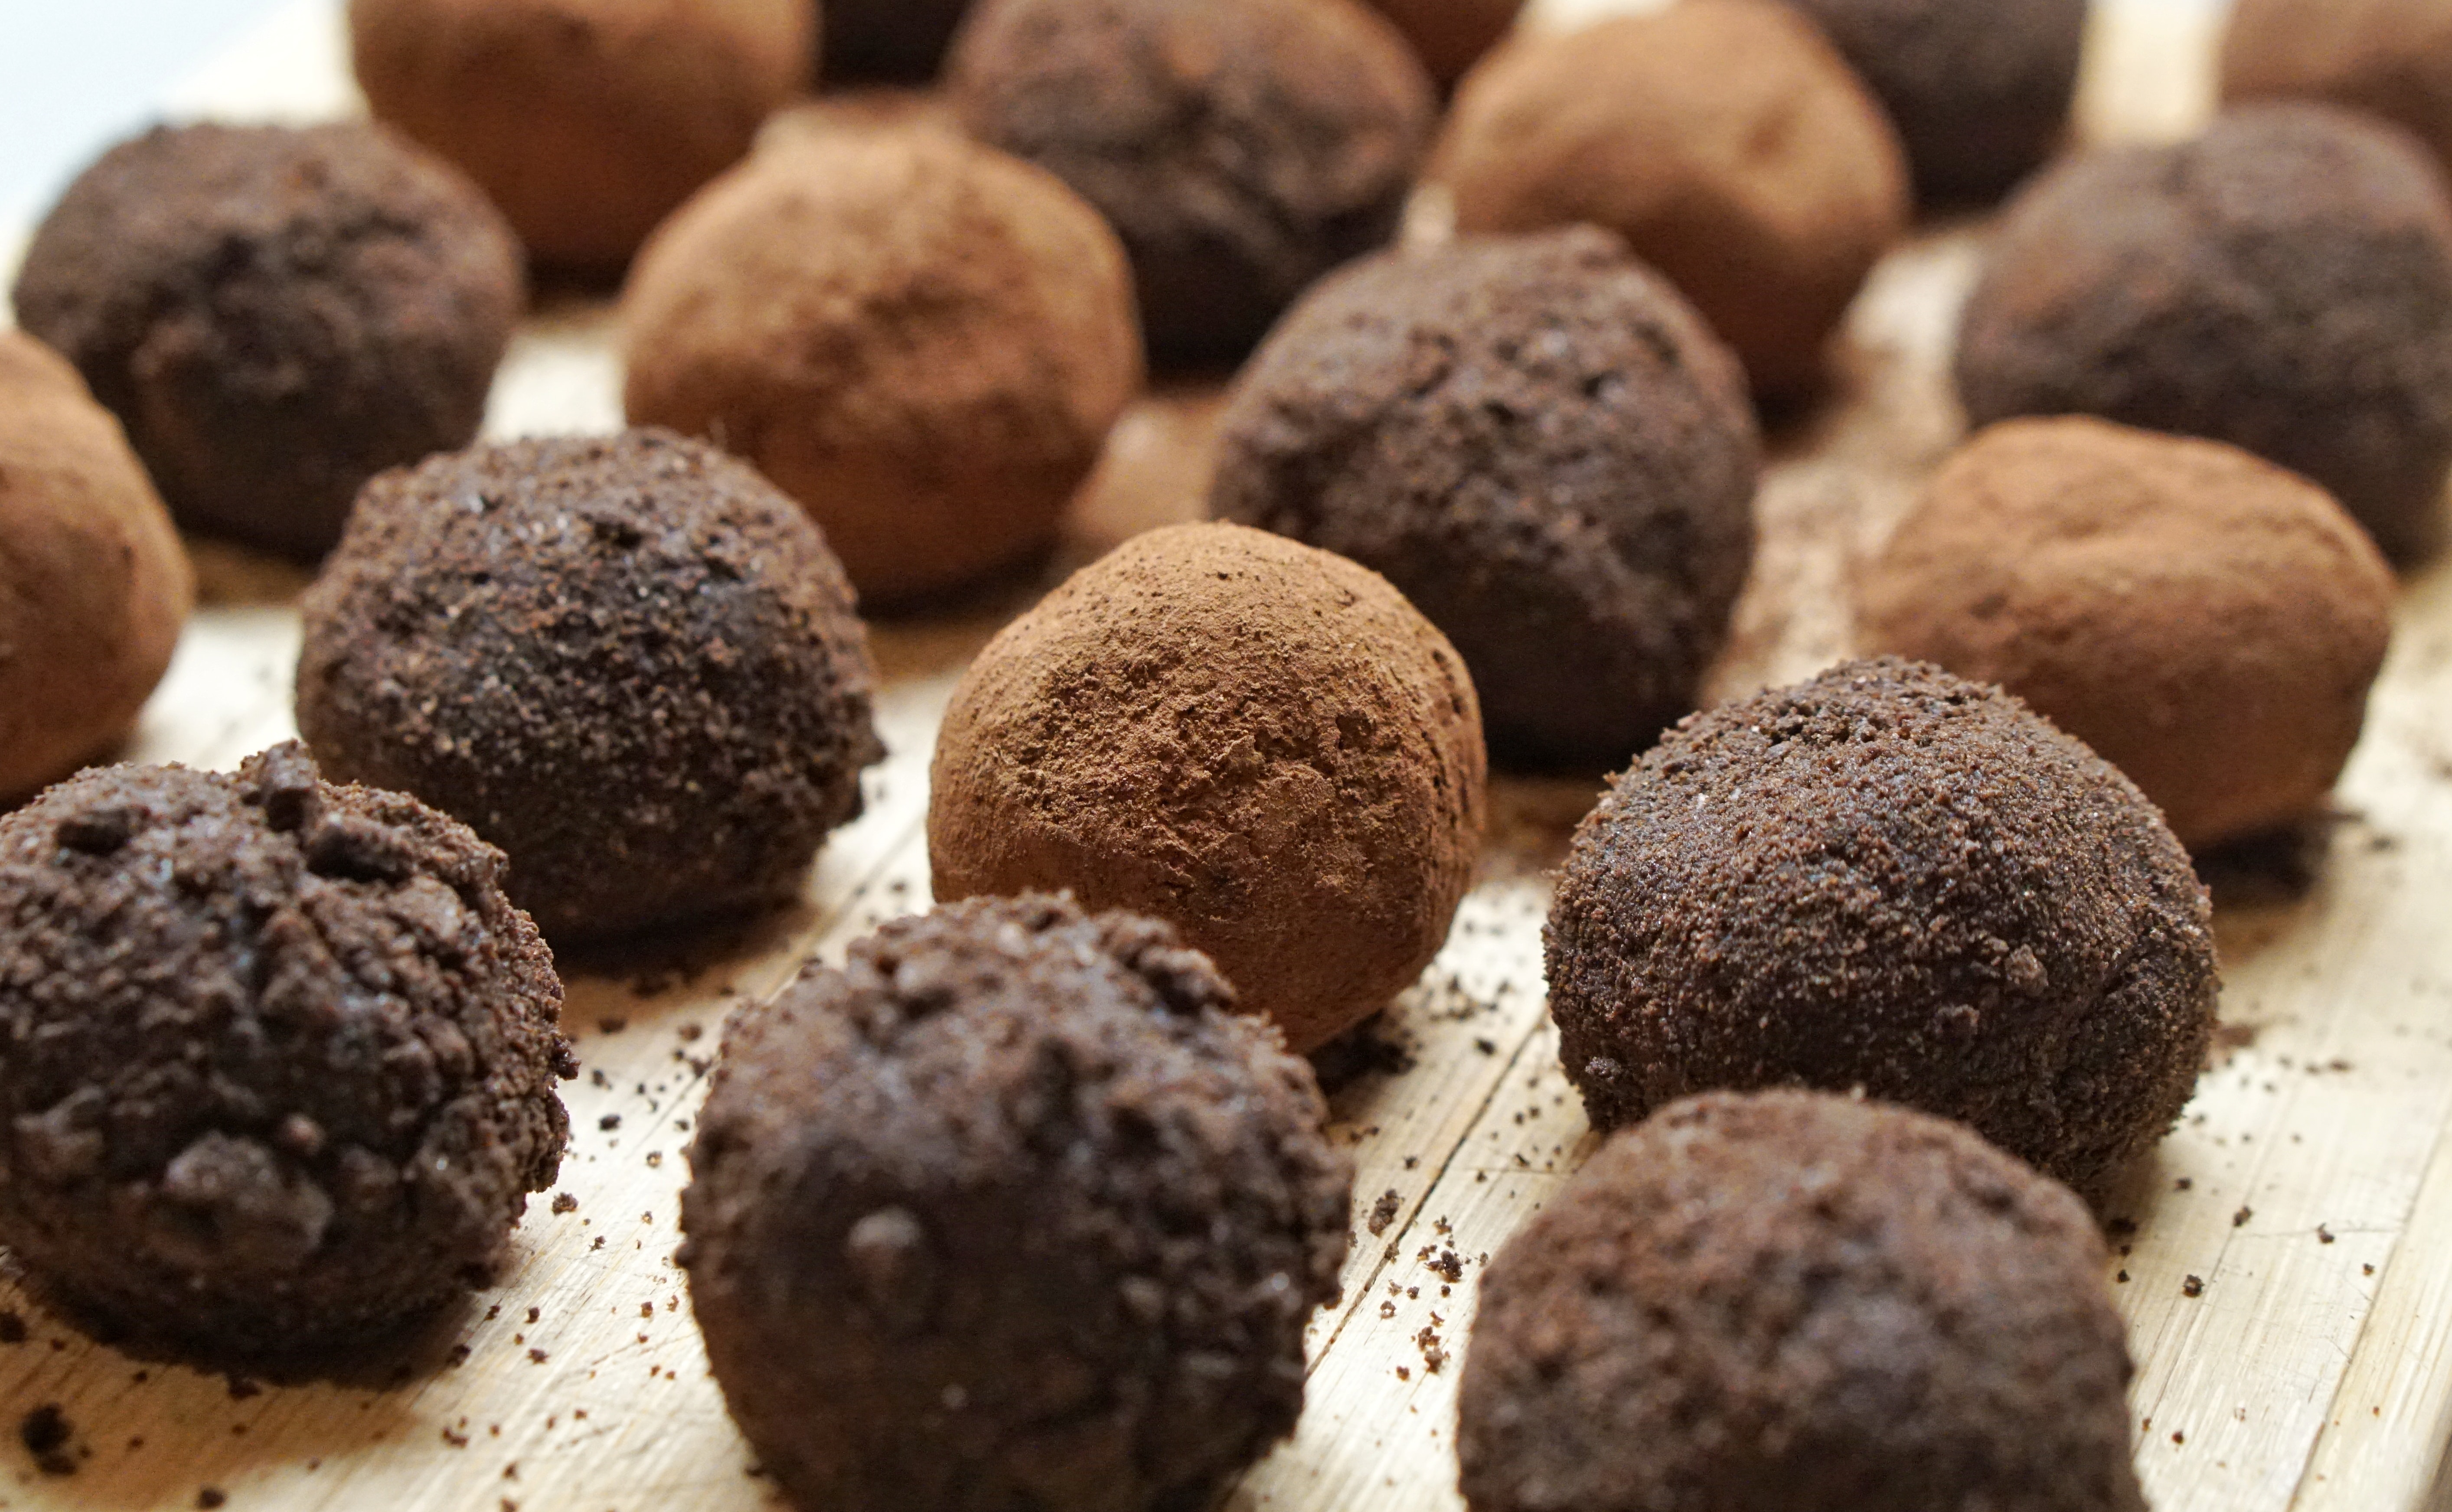 Rows of Chocolate Truffles in Against a White Background